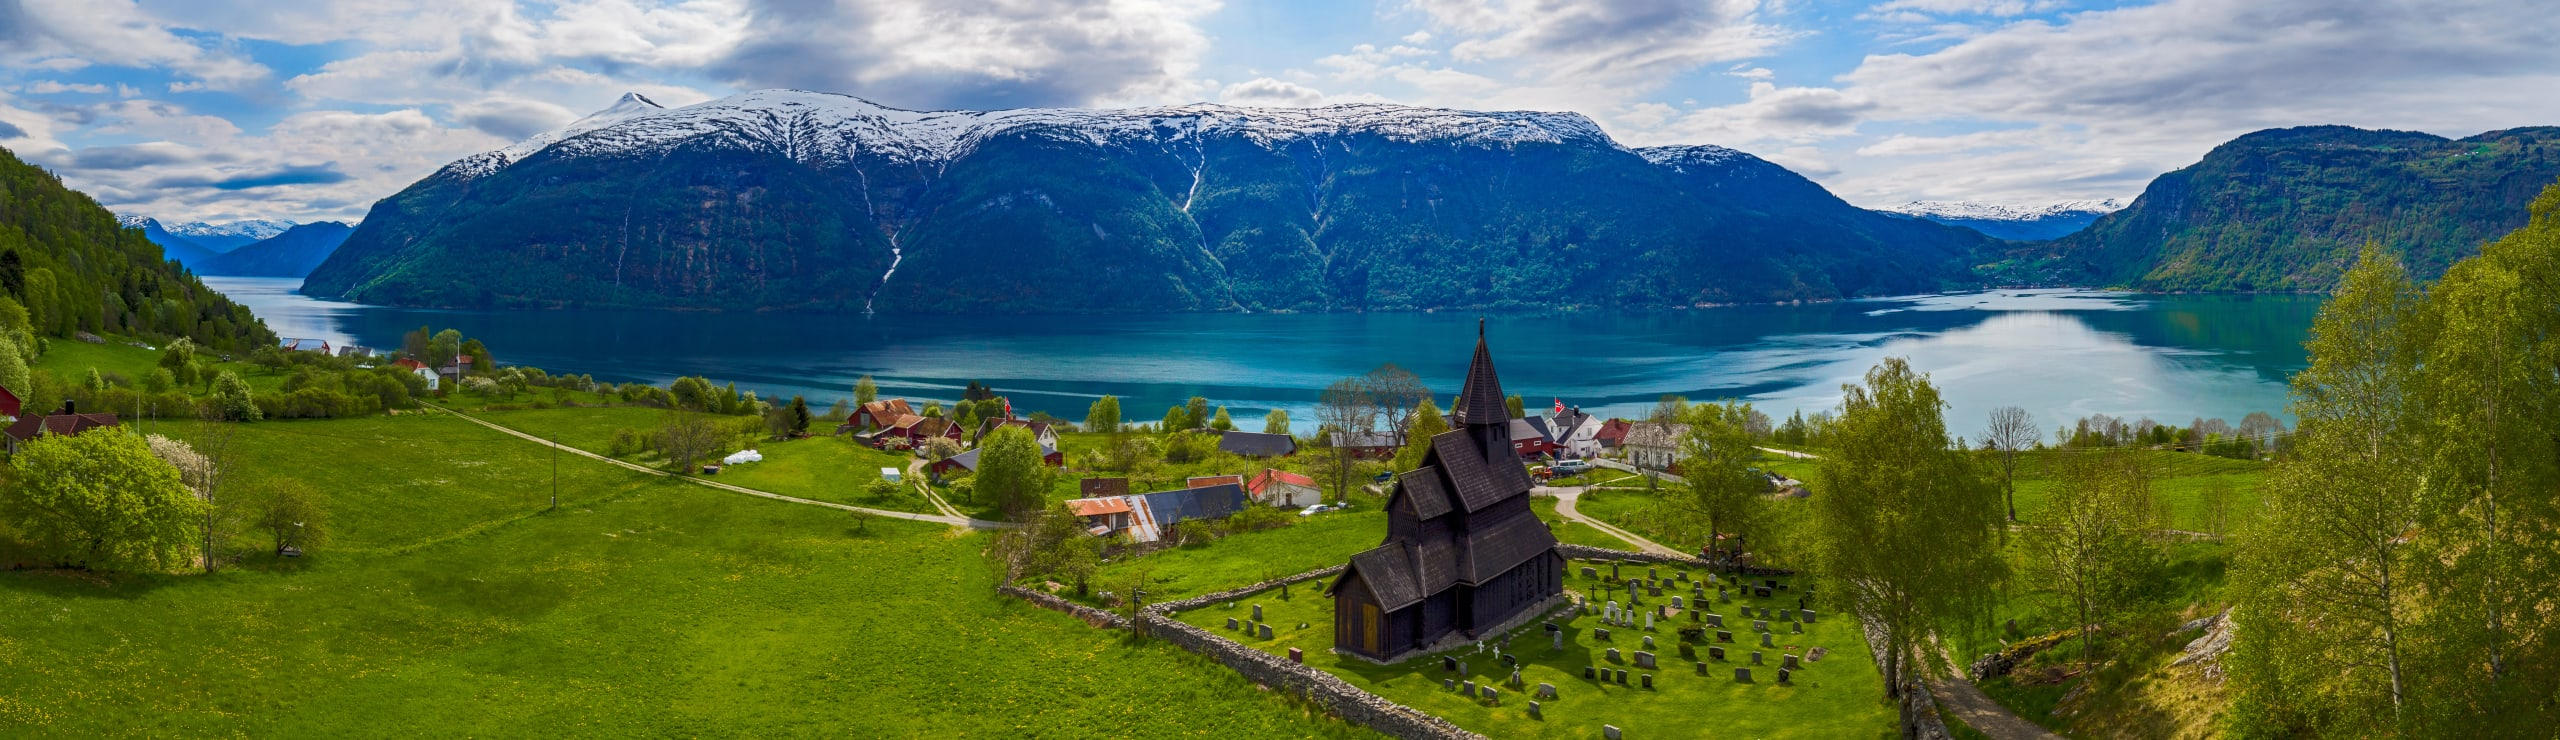 Urnes stave church by the Sognefjord